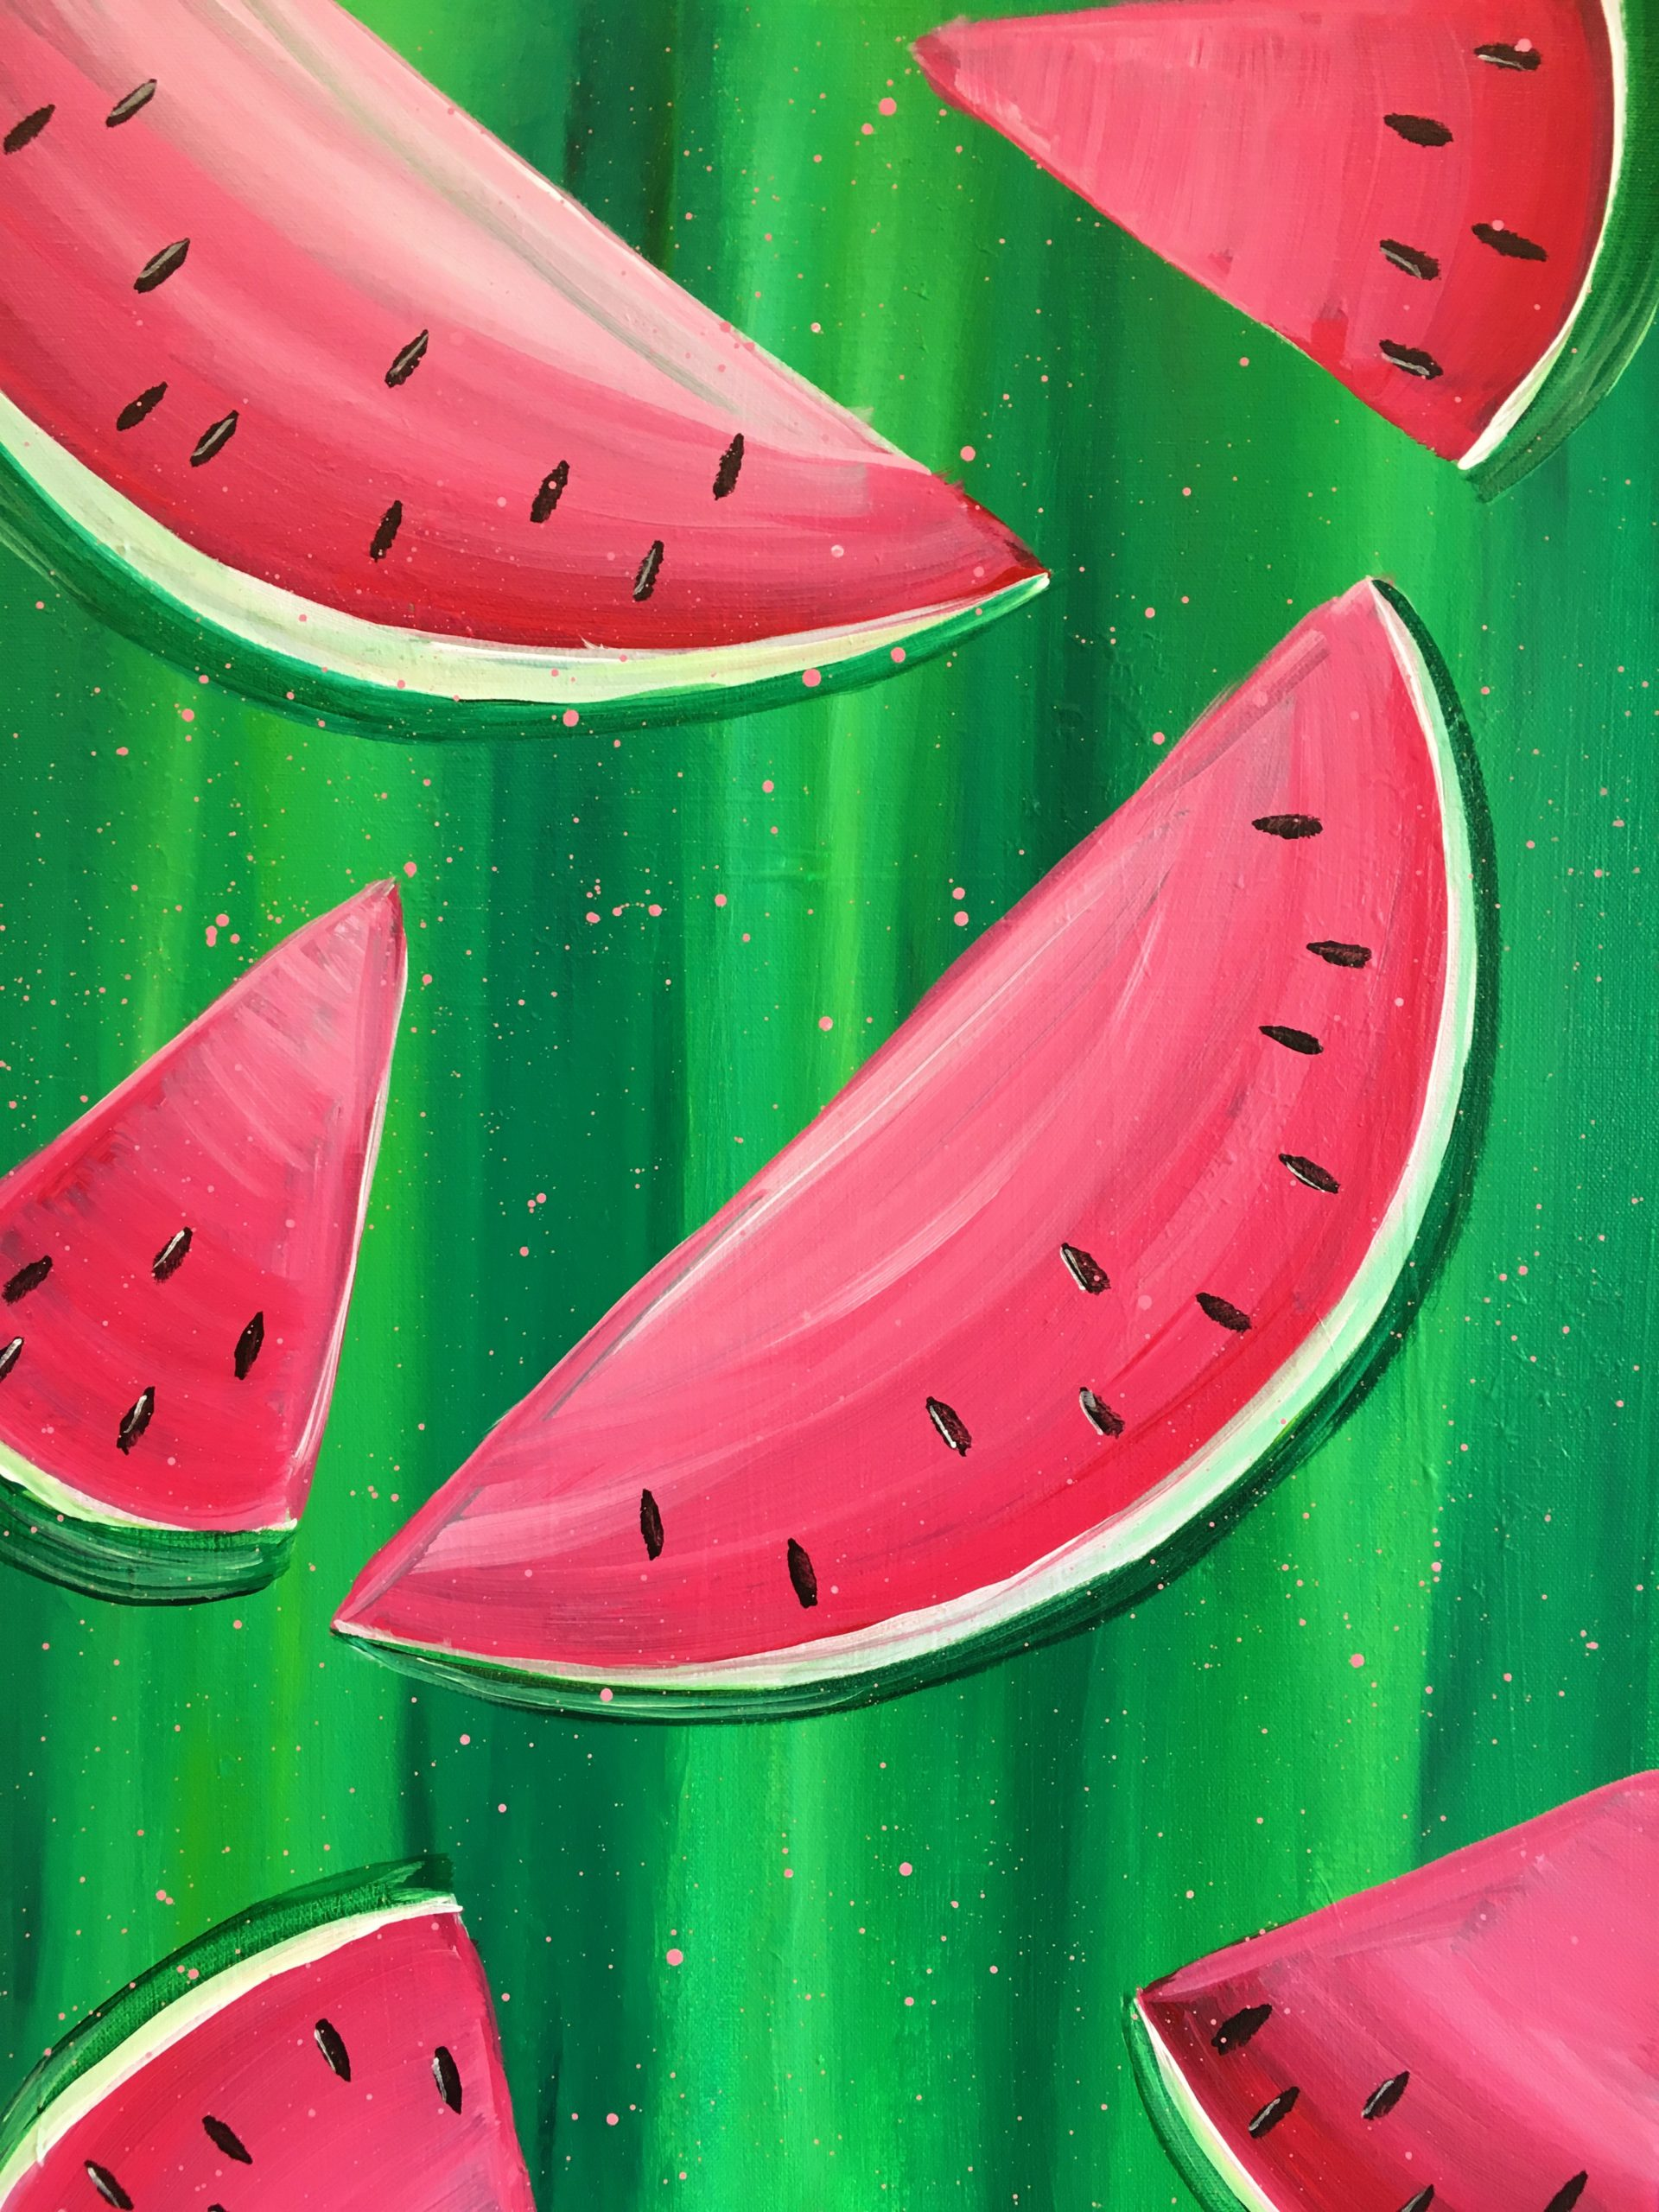 Watermelons Painting Kit